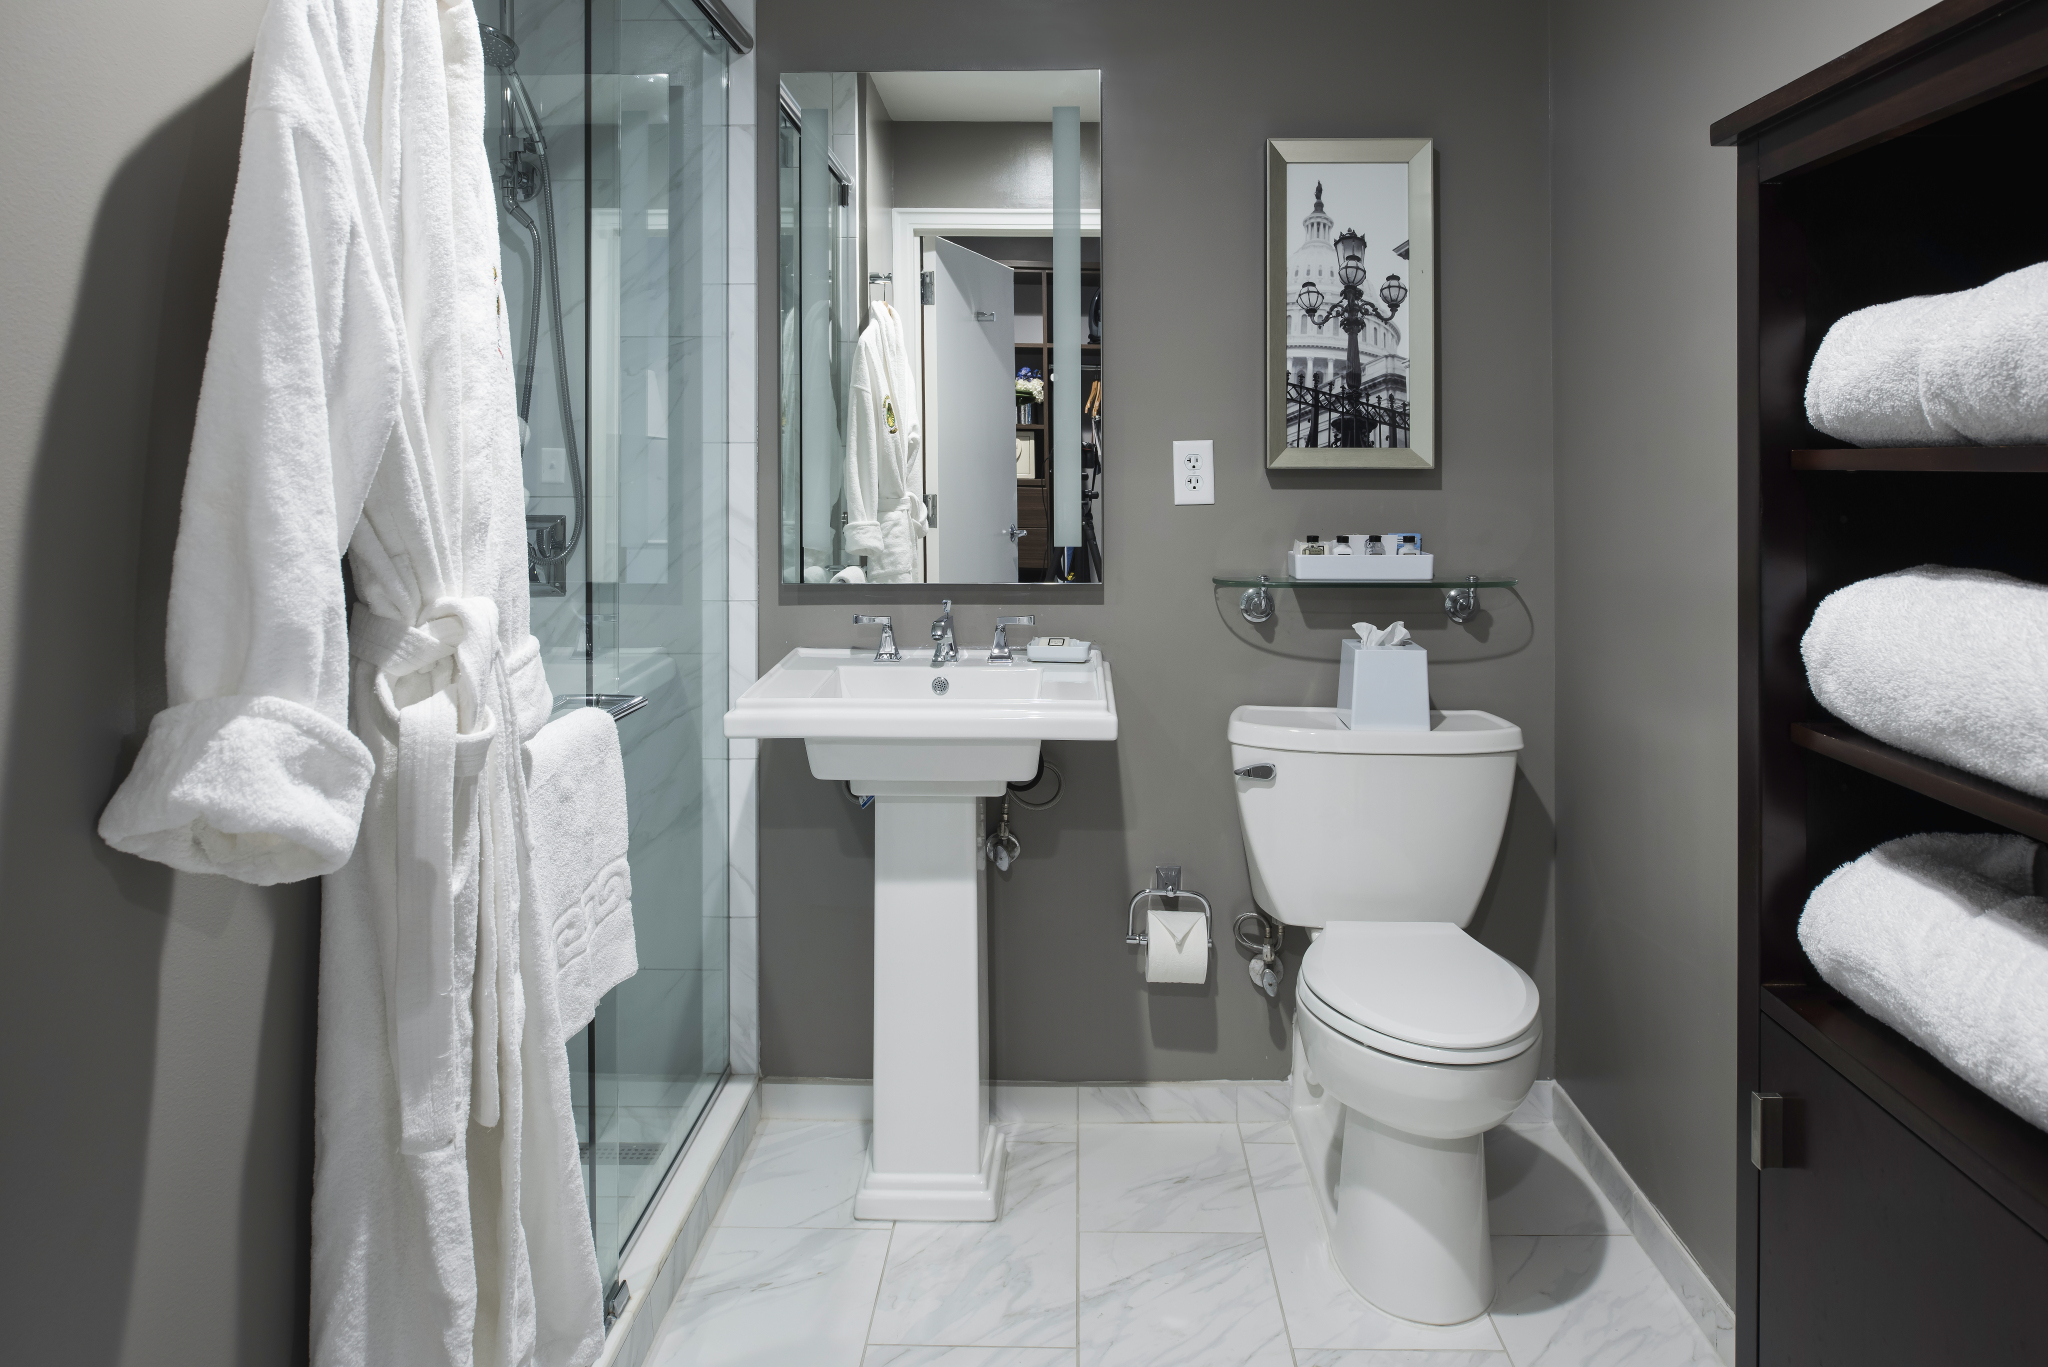 The Bathrooms At Phoenix Park Hotel Designed By Studio3877 Use Backlit Mirrors And Minimal Shelf Space